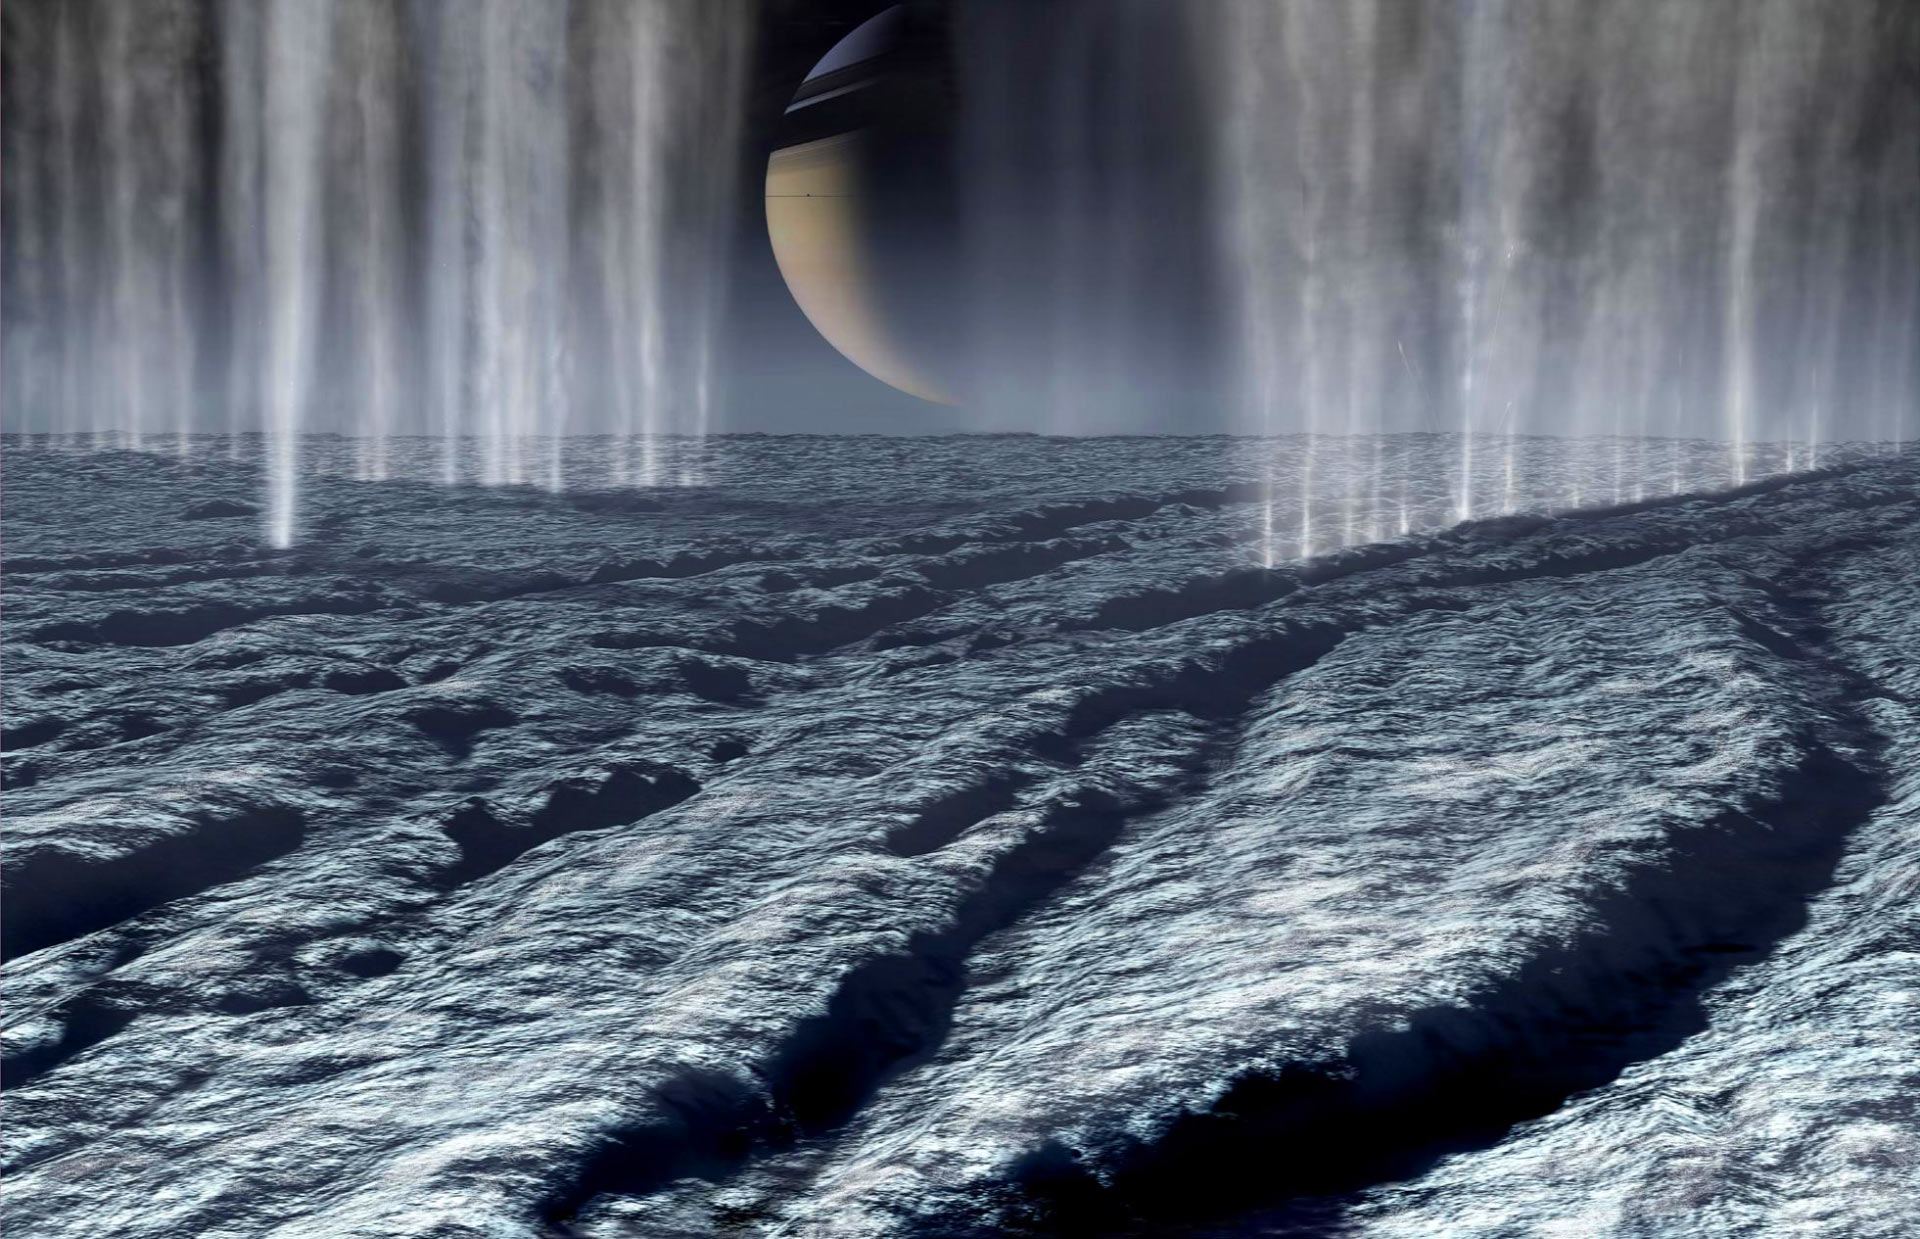 the moon enceladus of saturn essay The 15 most compelling scientific findings that suggest aliens are real  in addition to those on europa and enceladus,  saturn's largest moon,.